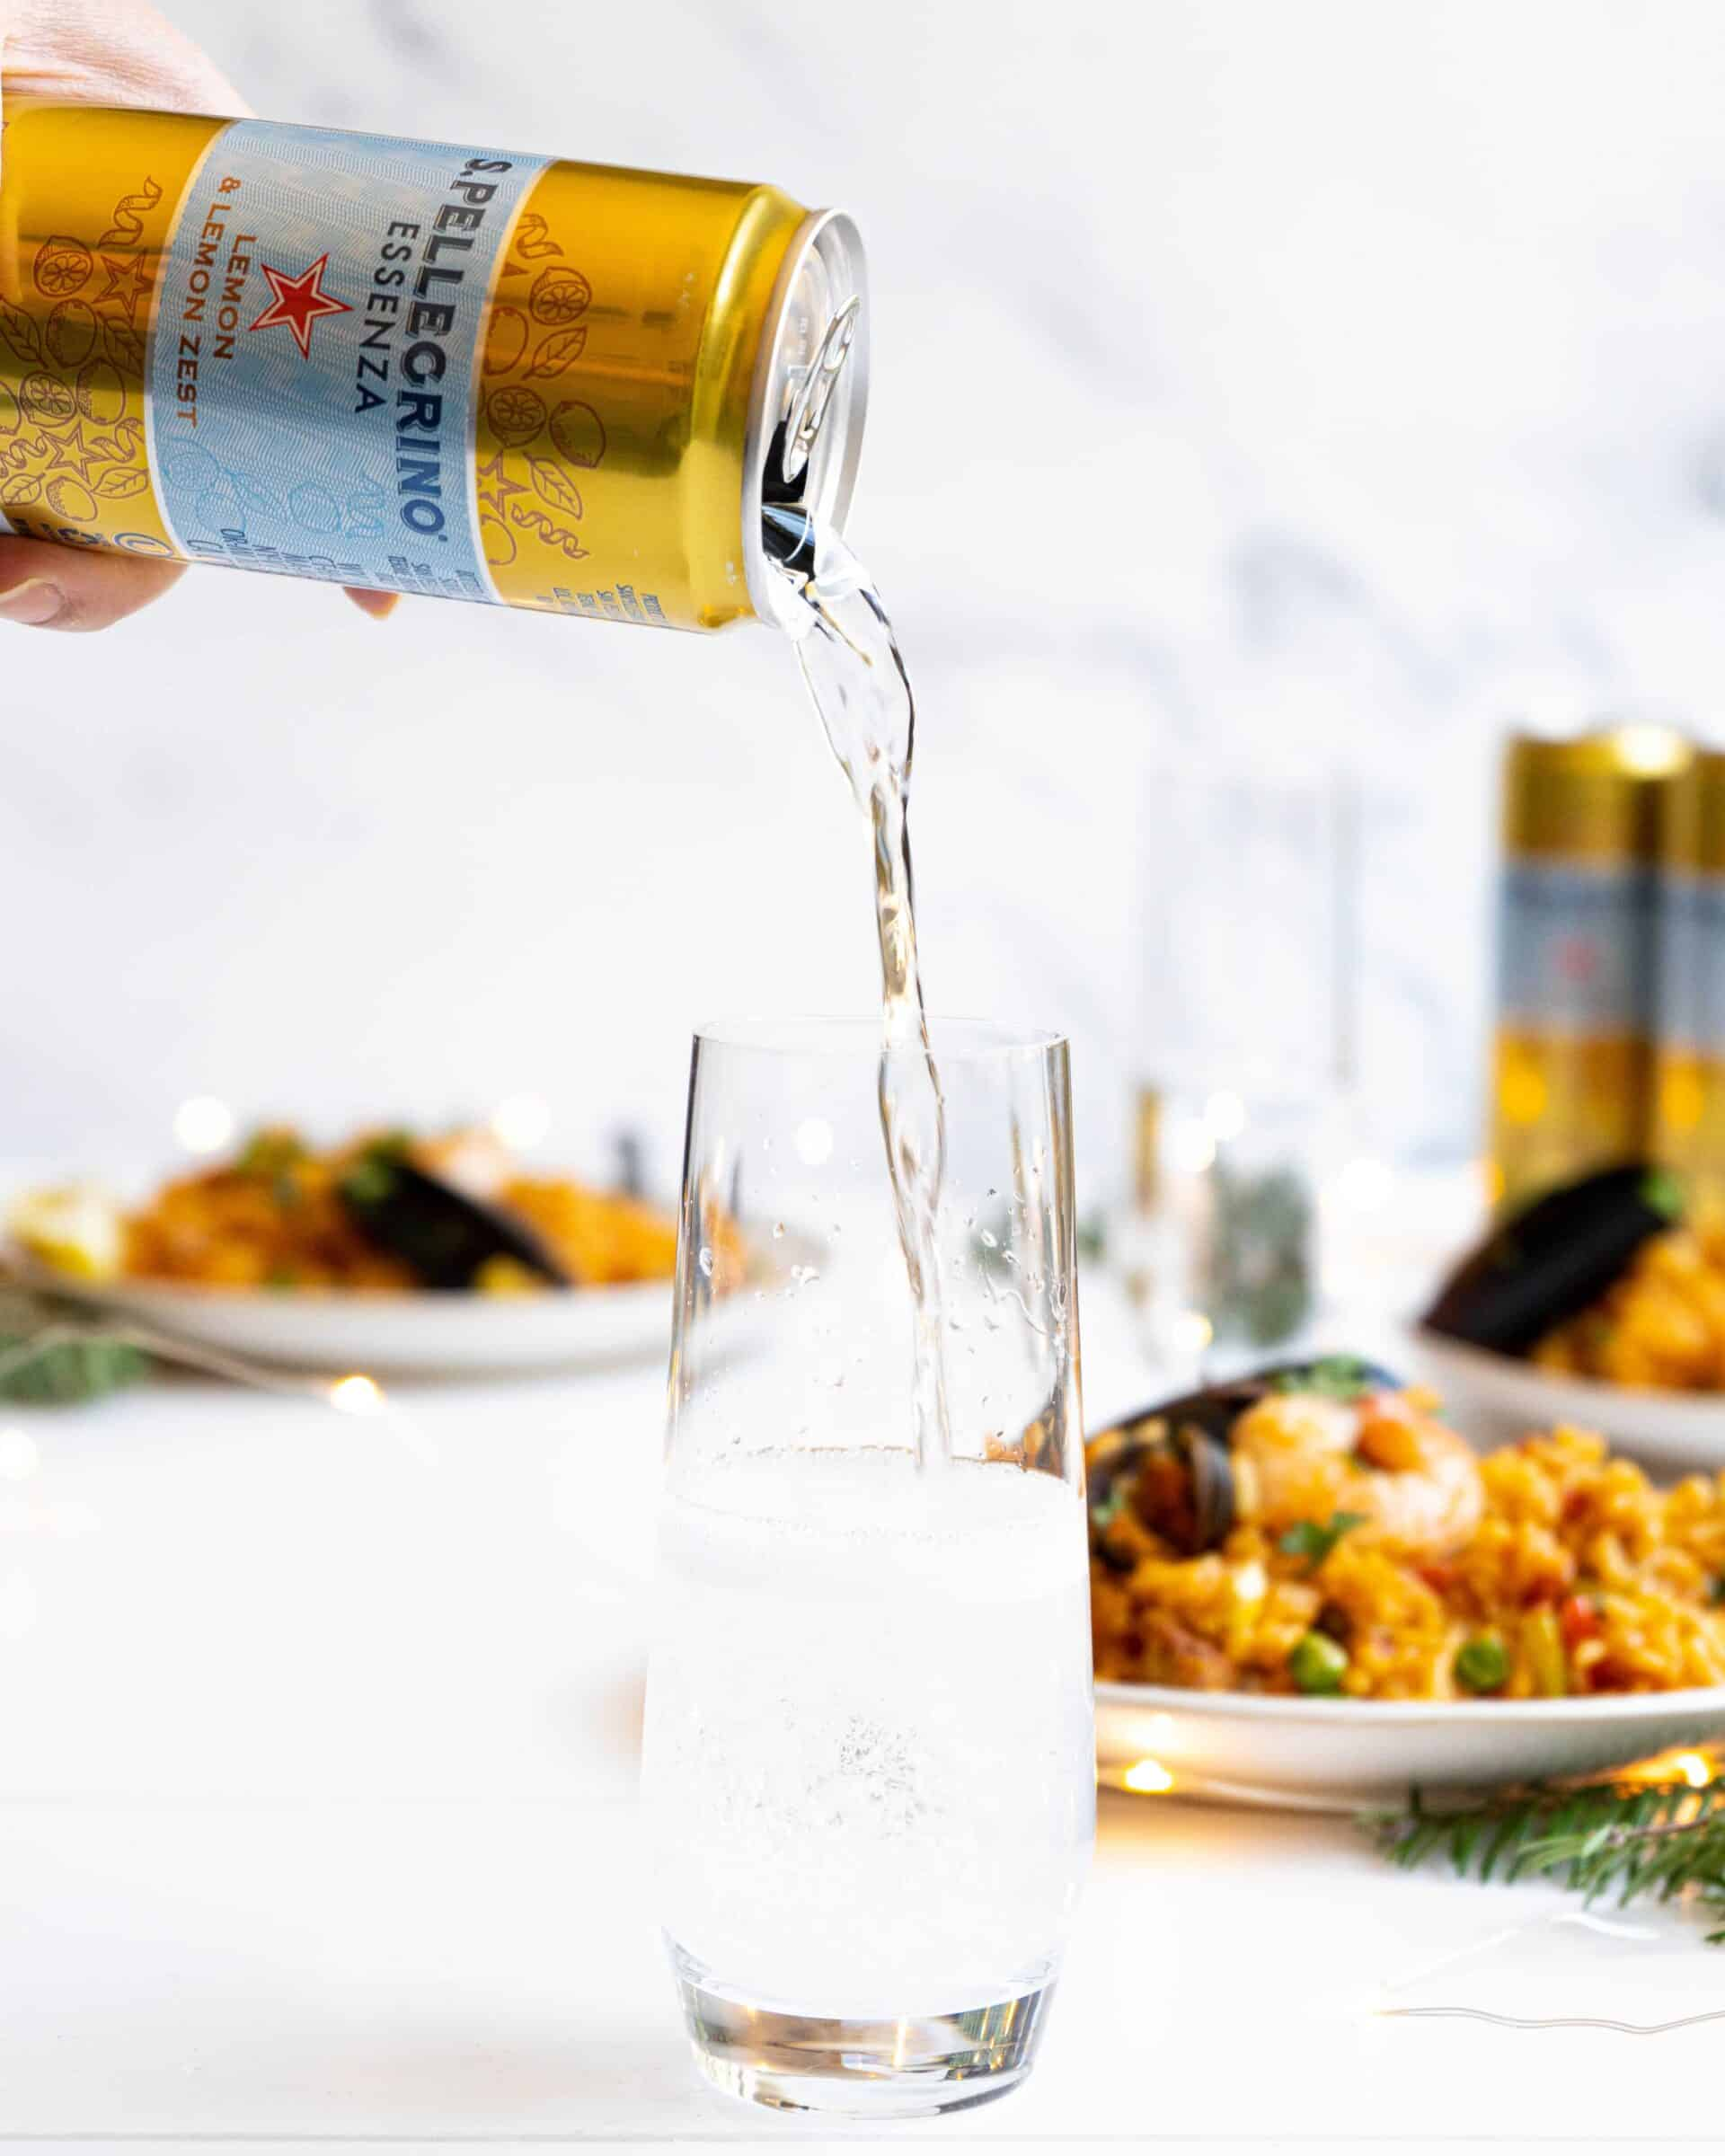 A can of S.Pellegrino pouring into a stemless glass amongst seafood paella